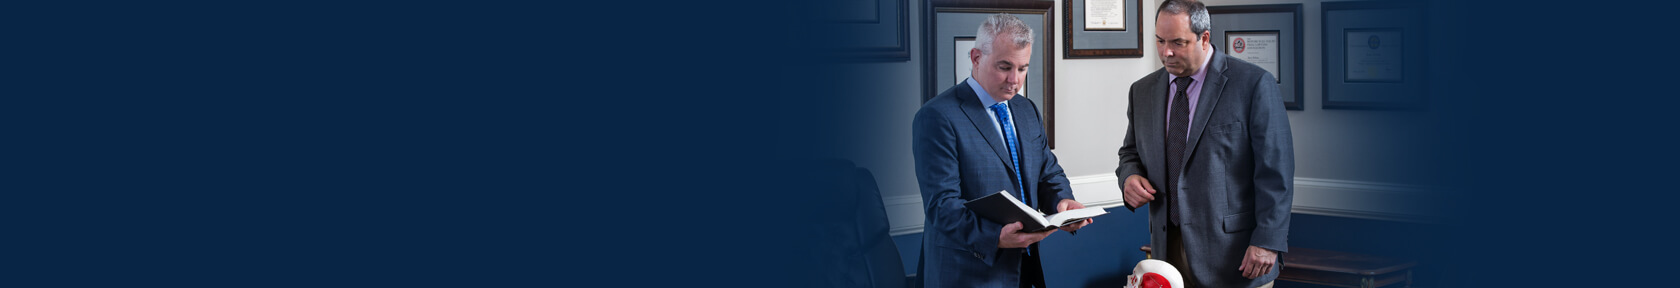 Default Banner for Holliday Karatinos Law Firm